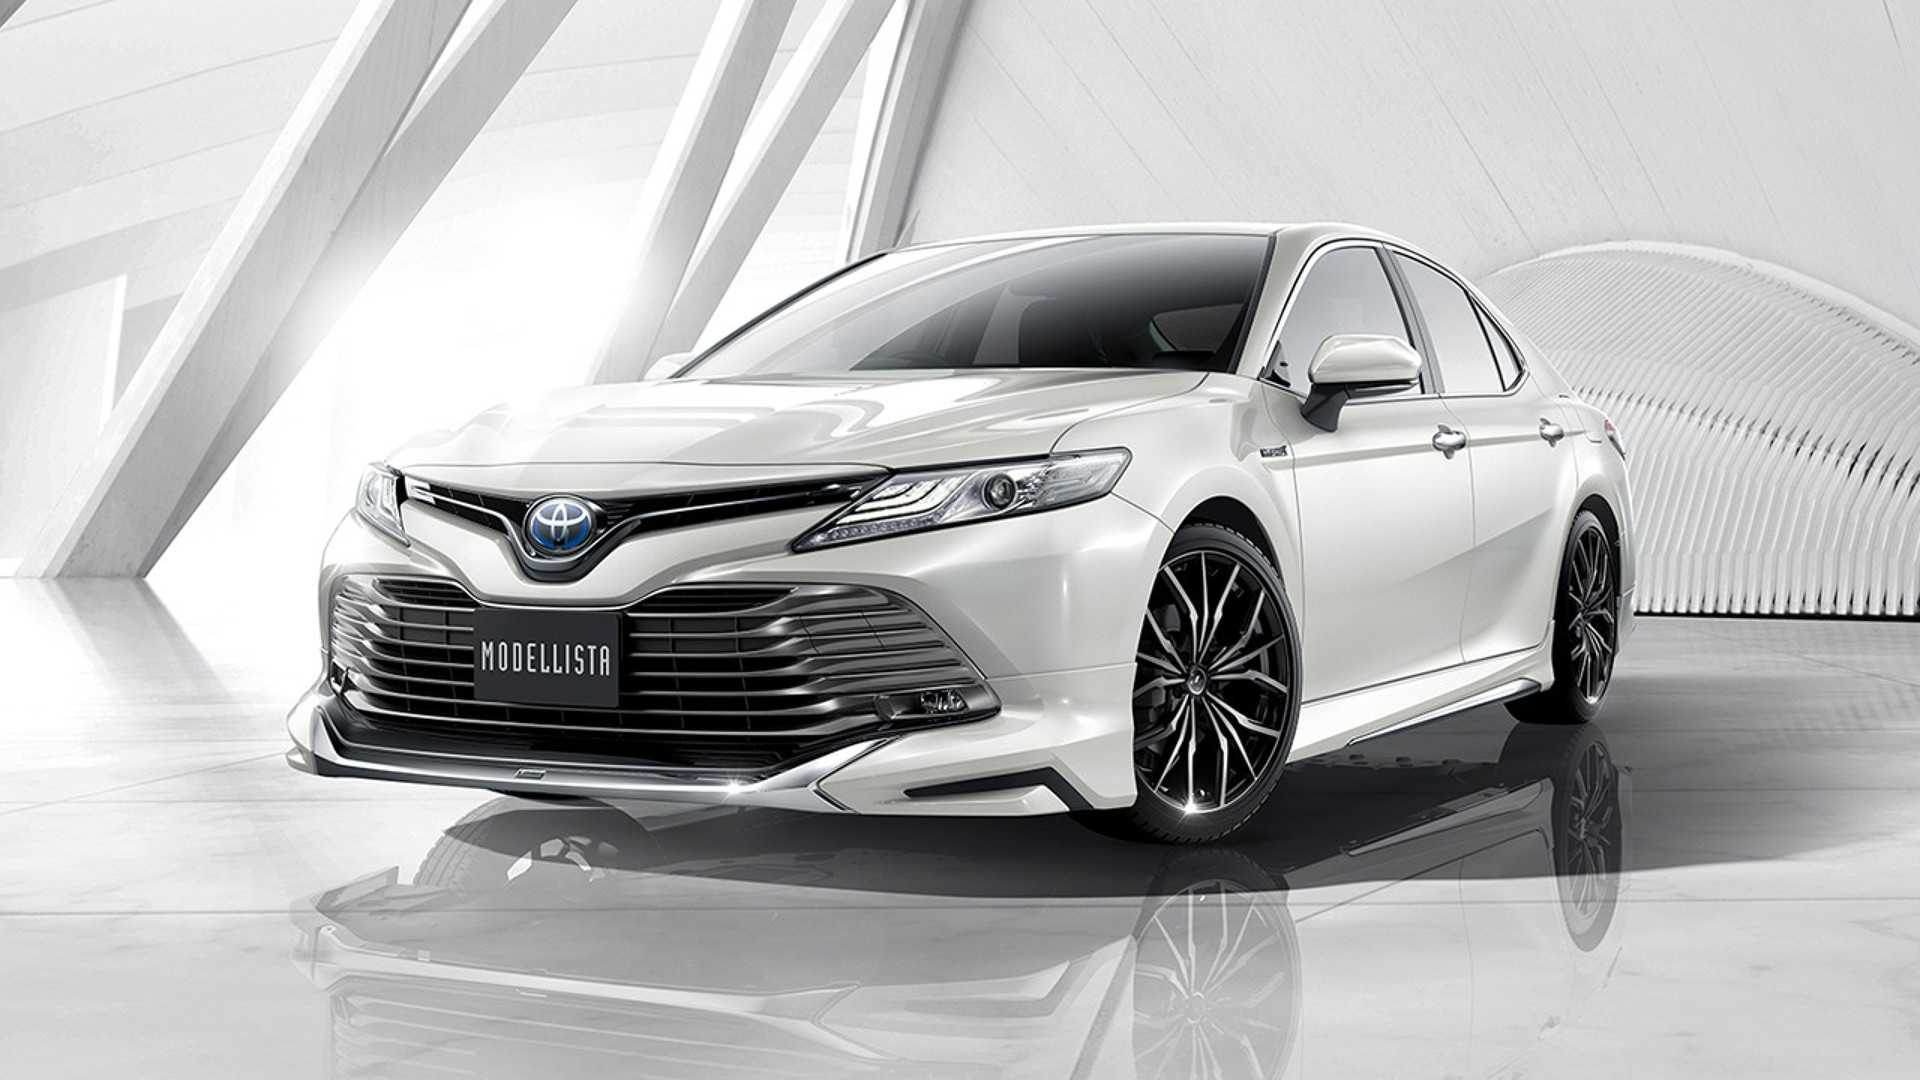 Toyota Japan Gifts The New Camry With Trd And Modellista